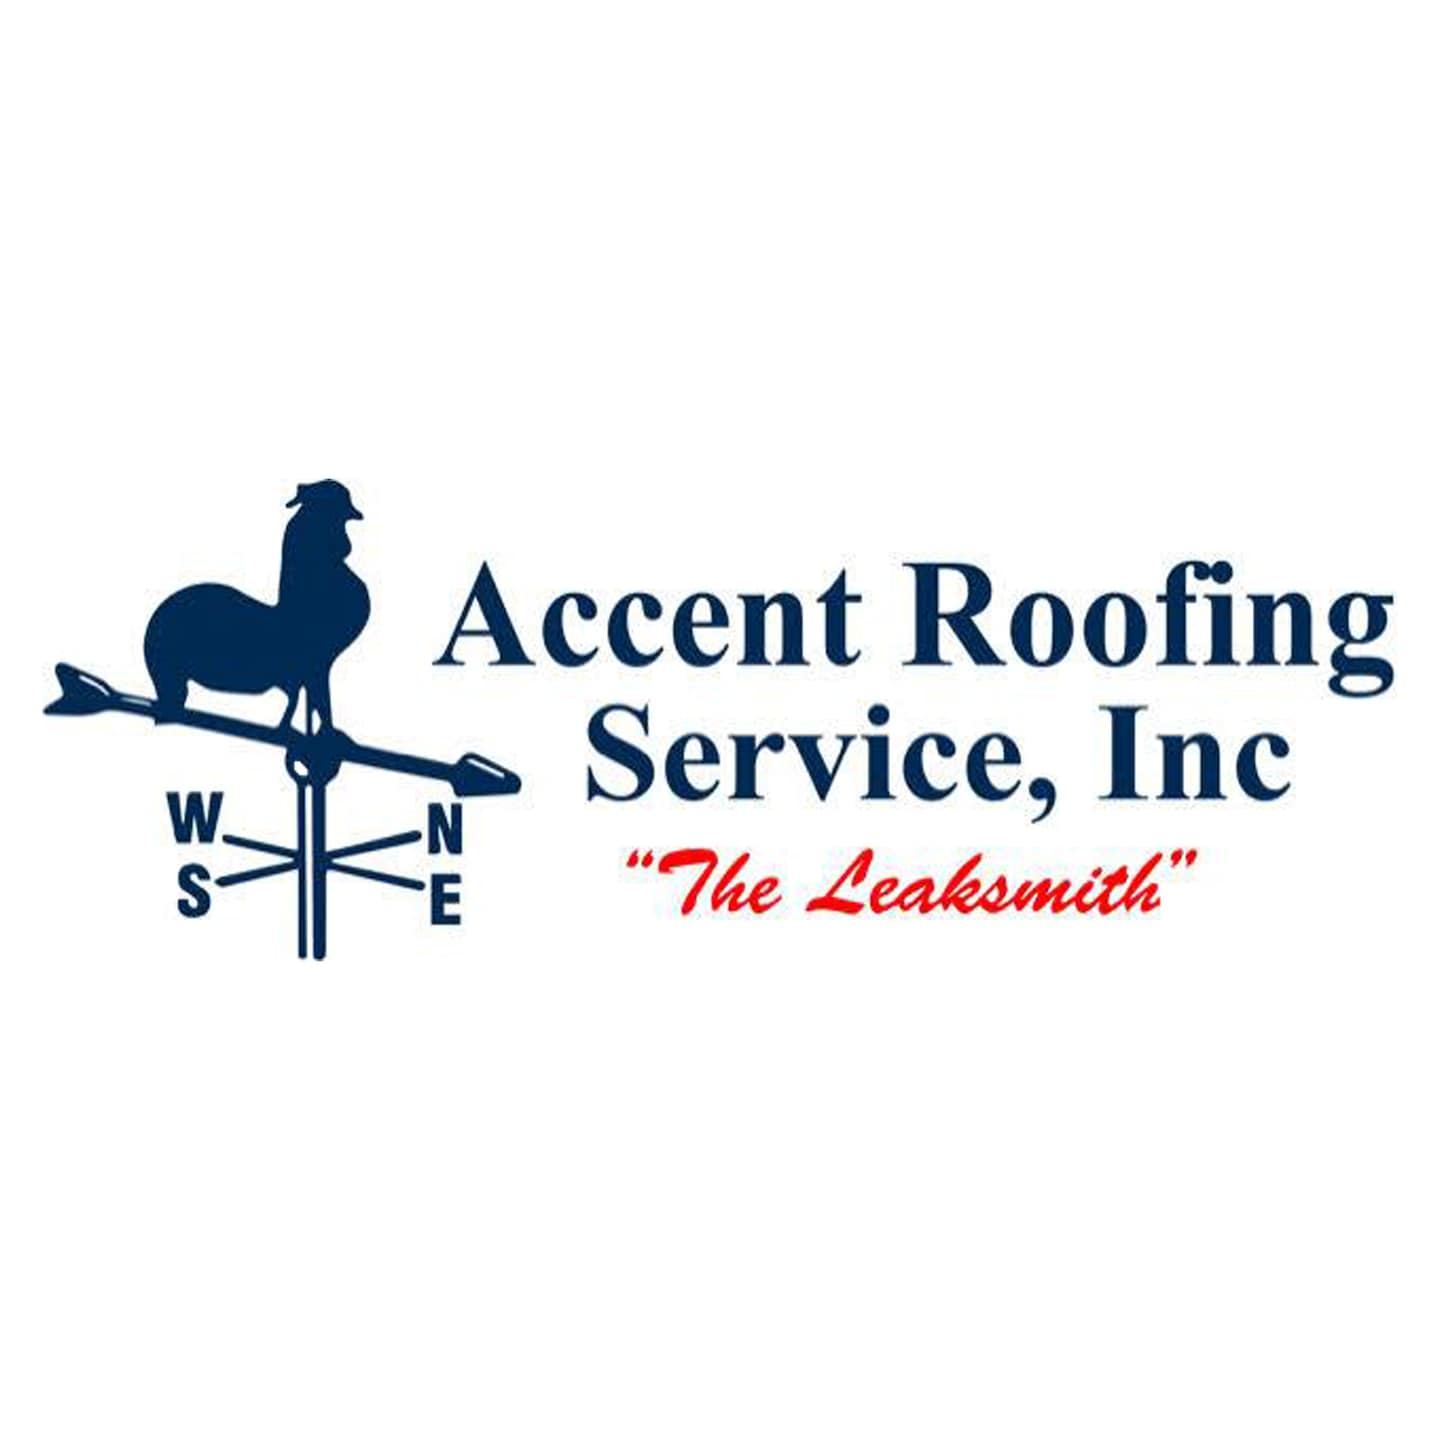 Accent Roofing Service The Leaksmith